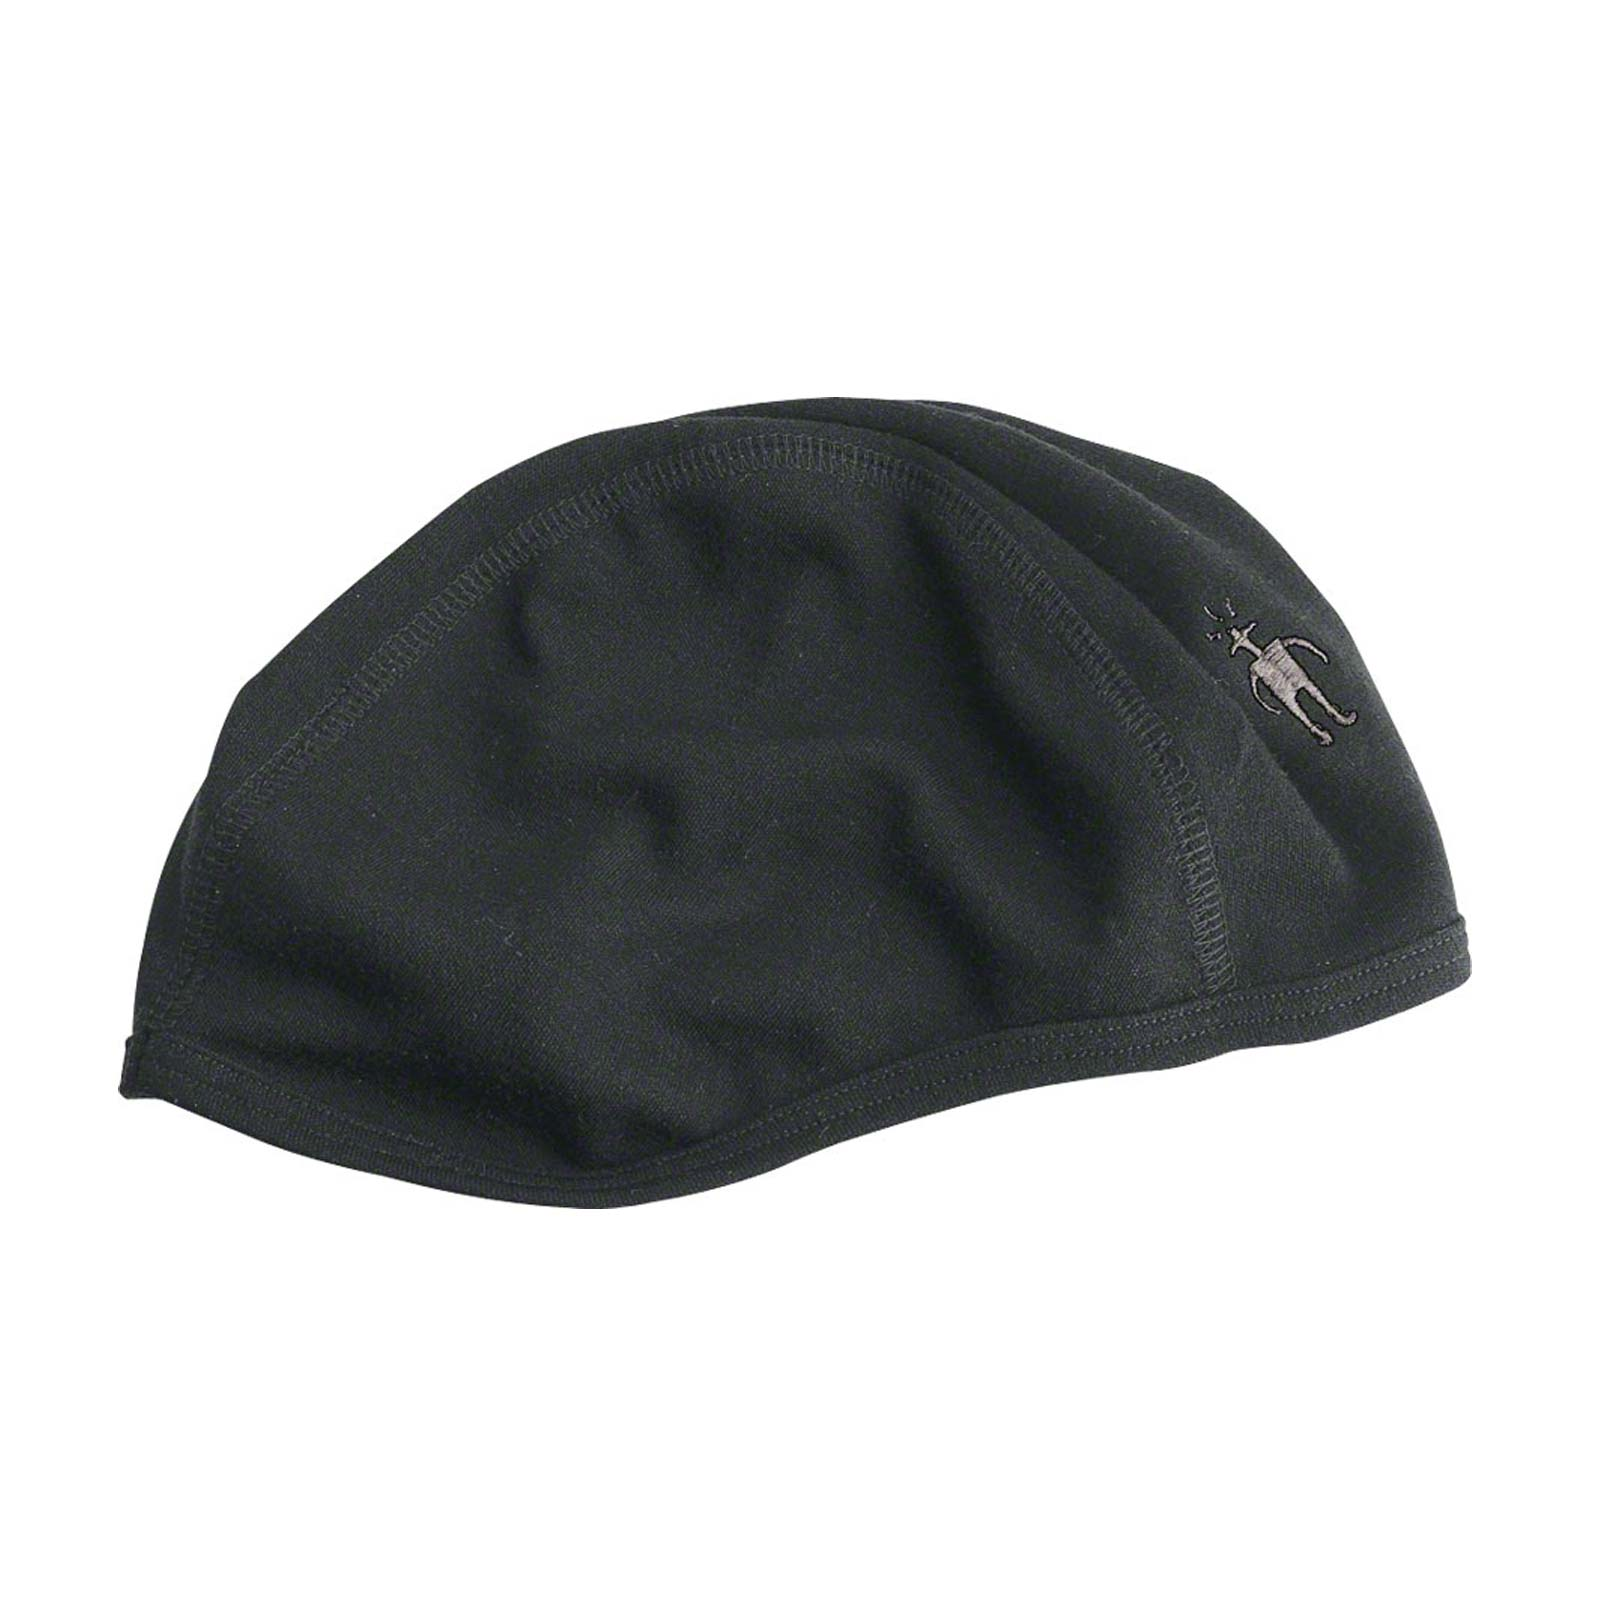 Smartwool Headliner Hat - Black One Size